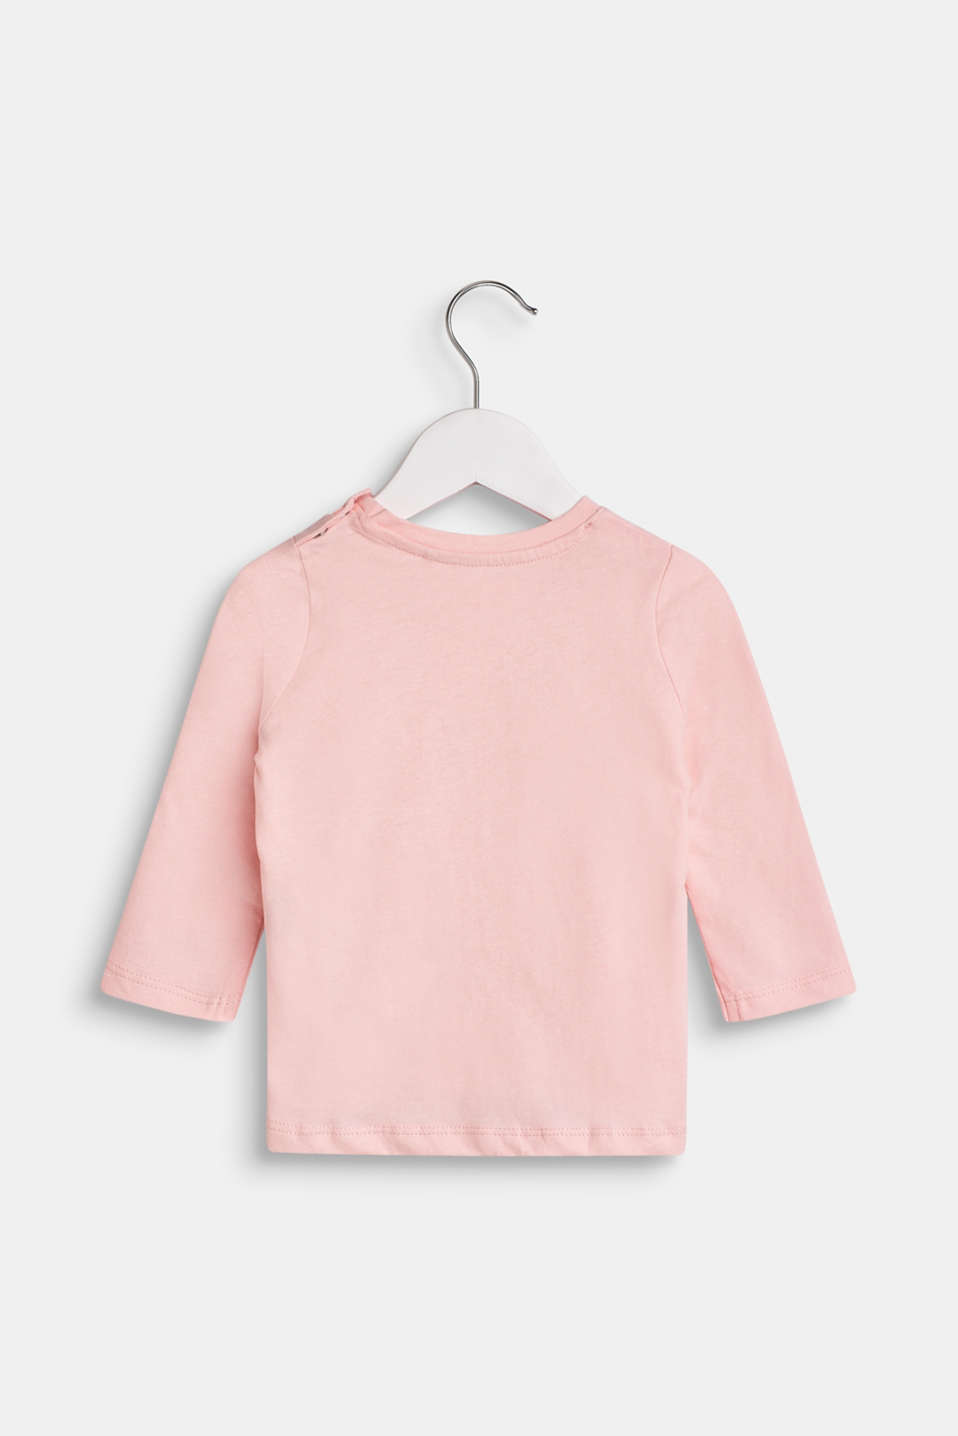 Long sleeve top with a front print, 100% cotton, LCTINTED ROSE, detail image number 1